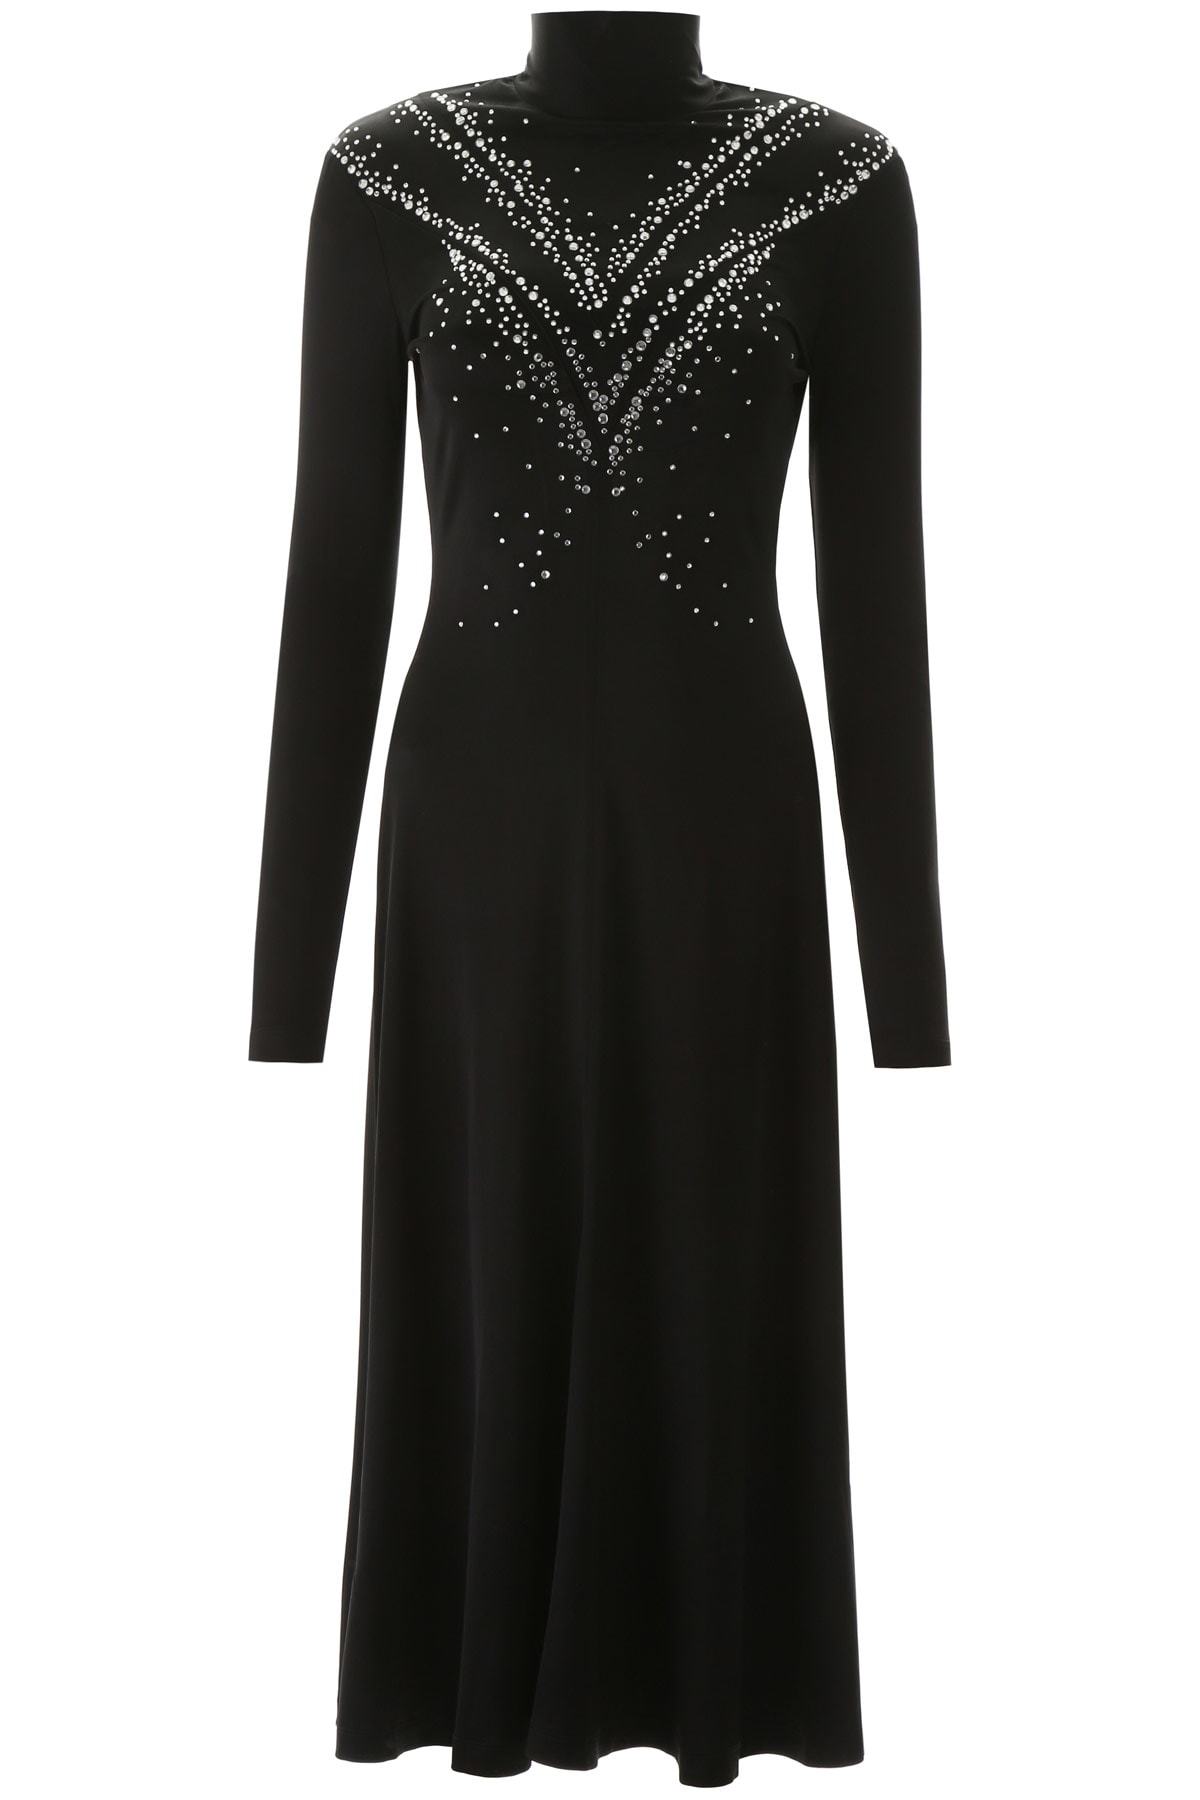 Buy Paco Rabanne Long Dress With Rhinestones online, shop Paco Rabanne with free shipping